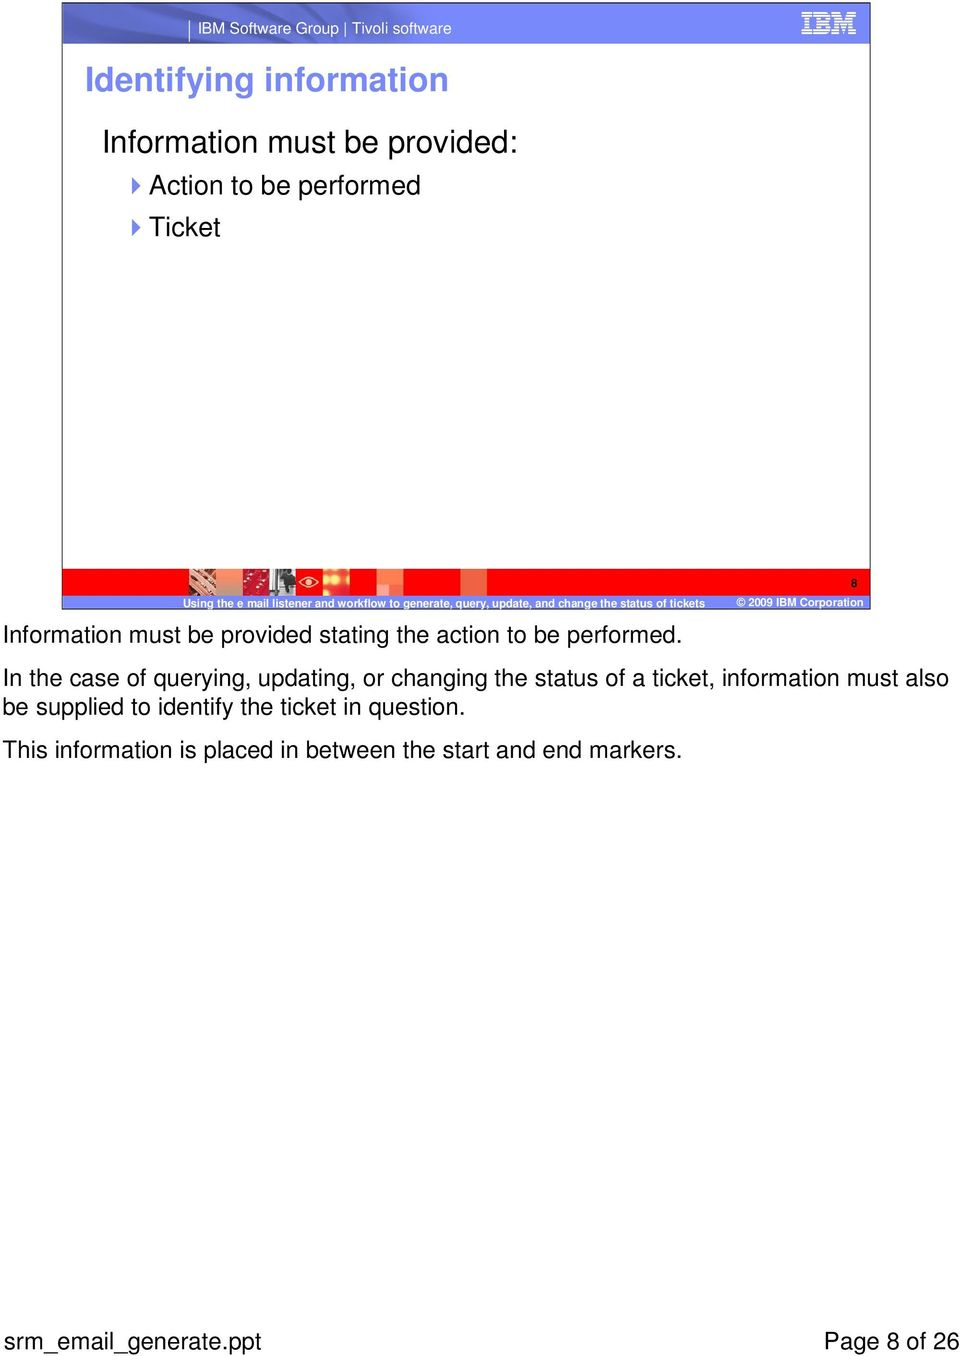 In the case of querying, updating, or changing the status of a ticket, information must also